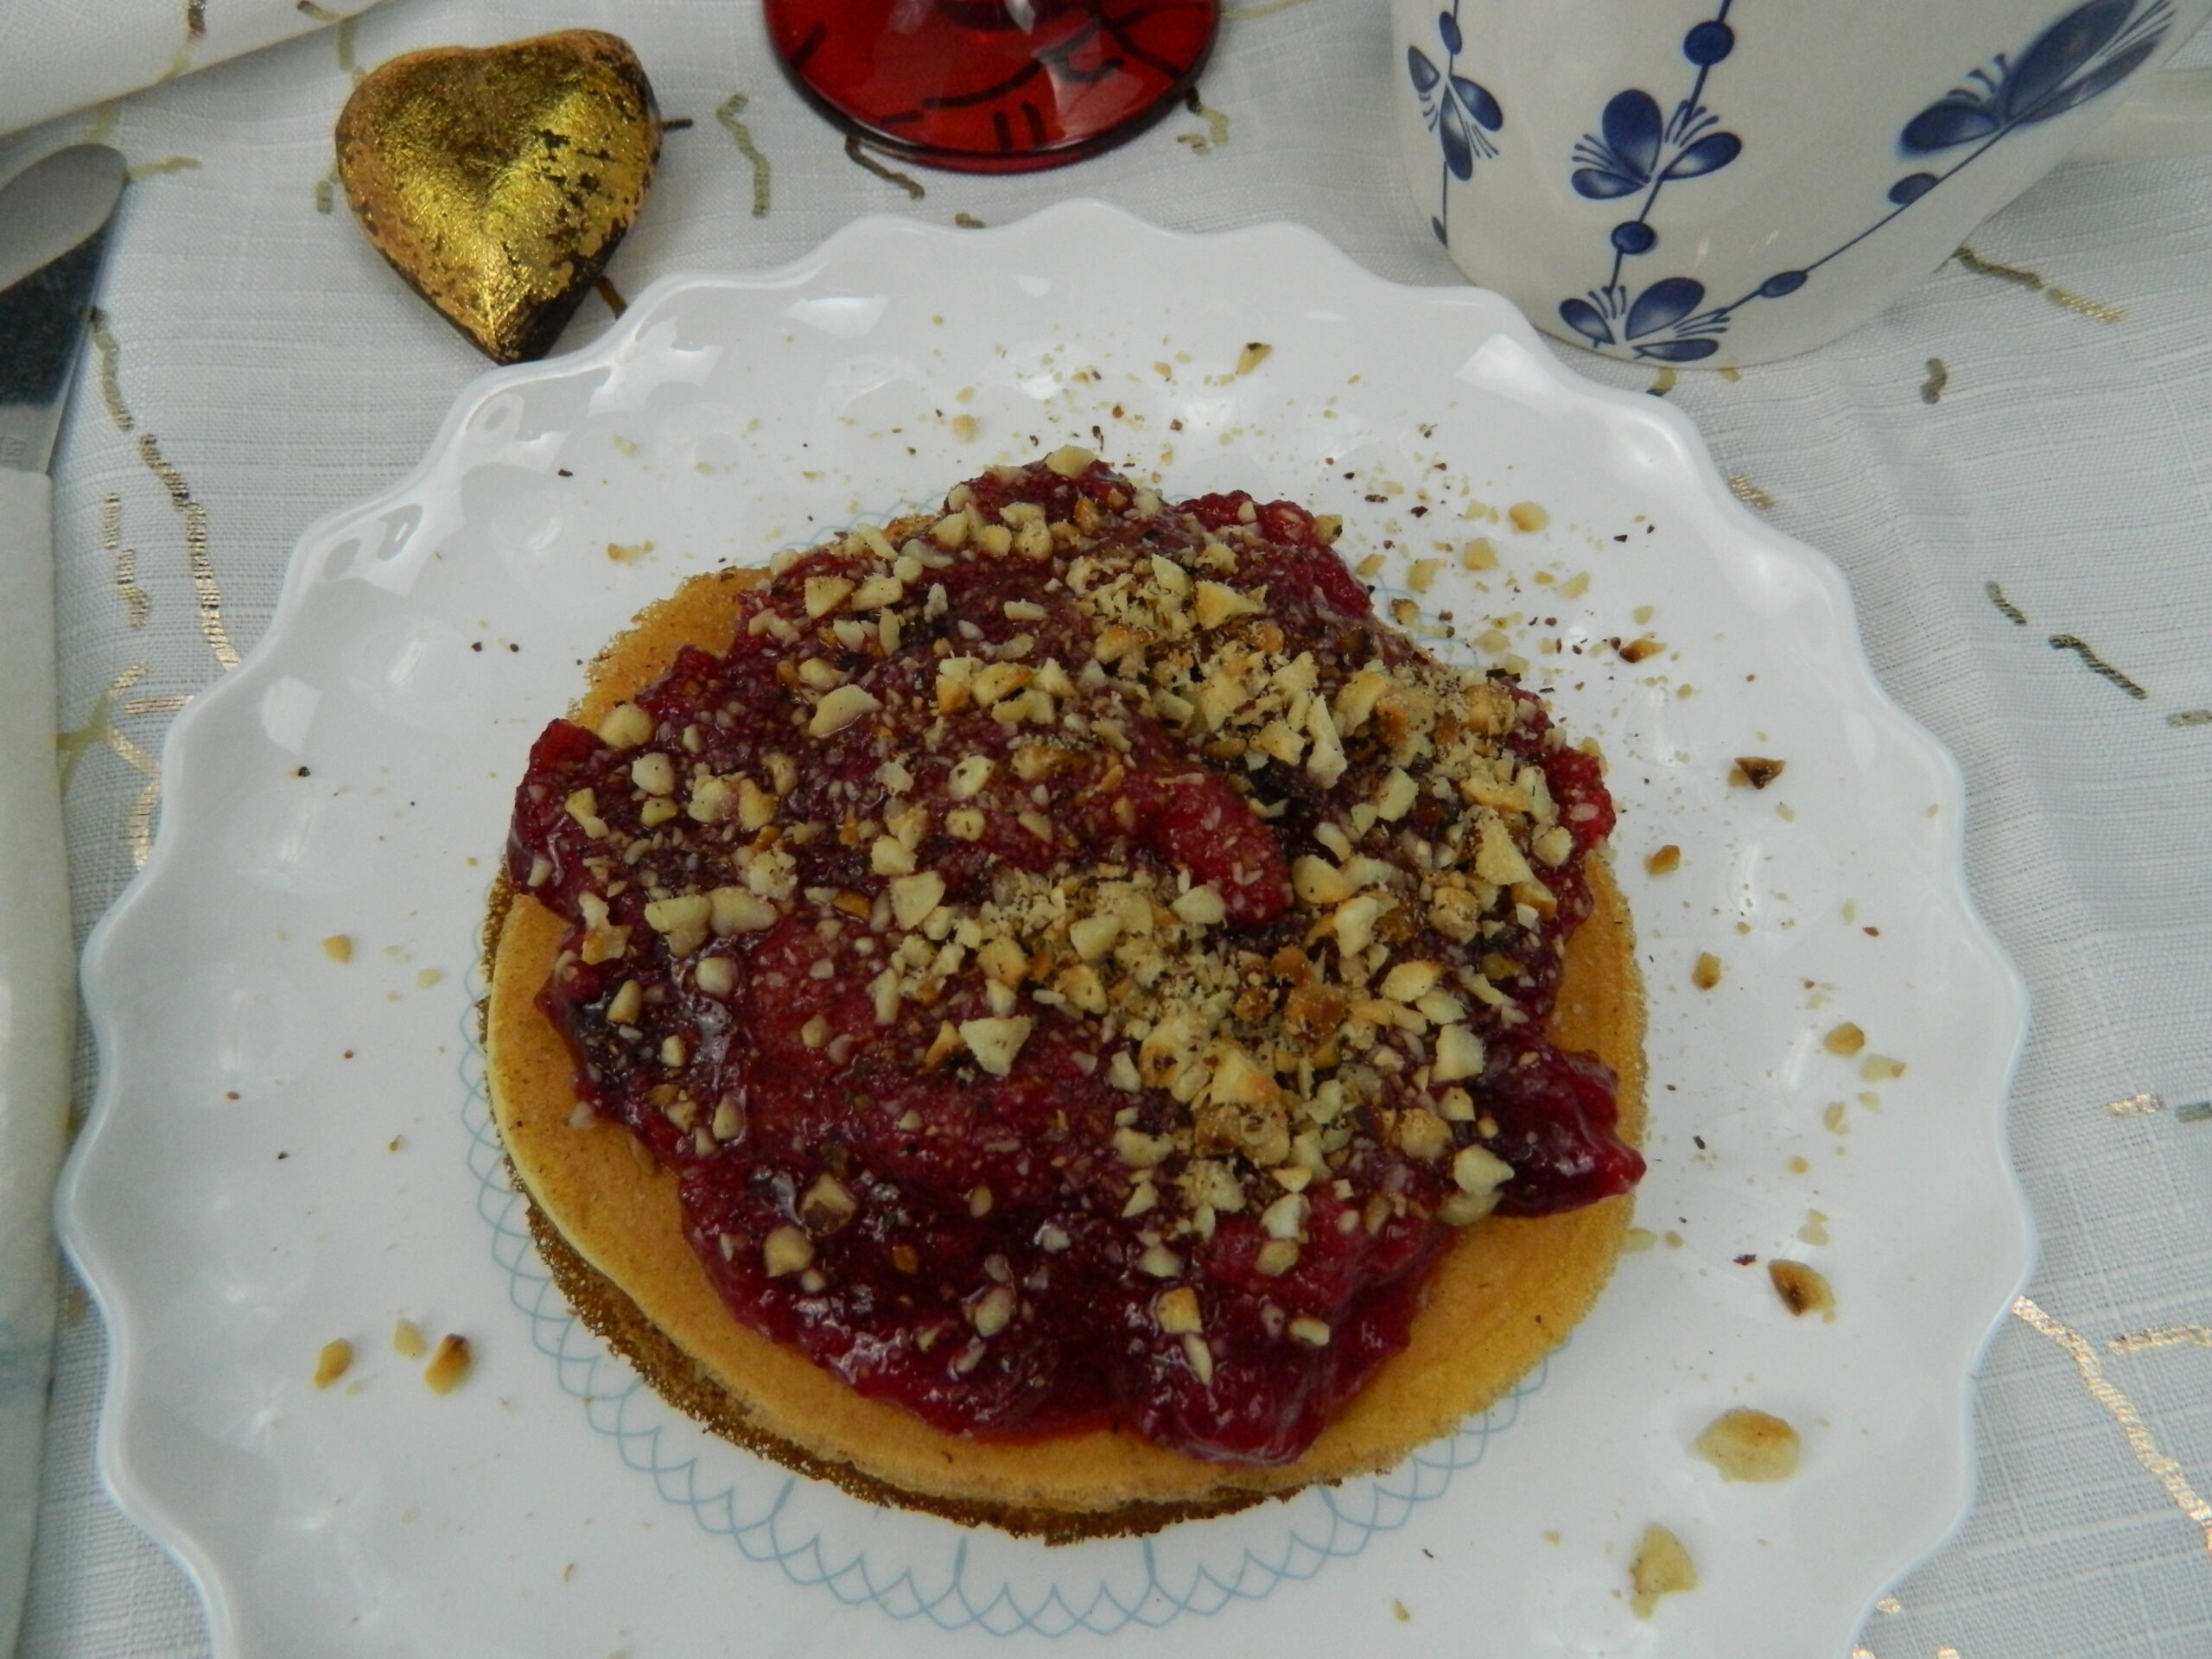 Smooth Ricotta Pancakes with Red Berries and Homemade Peanut Butter